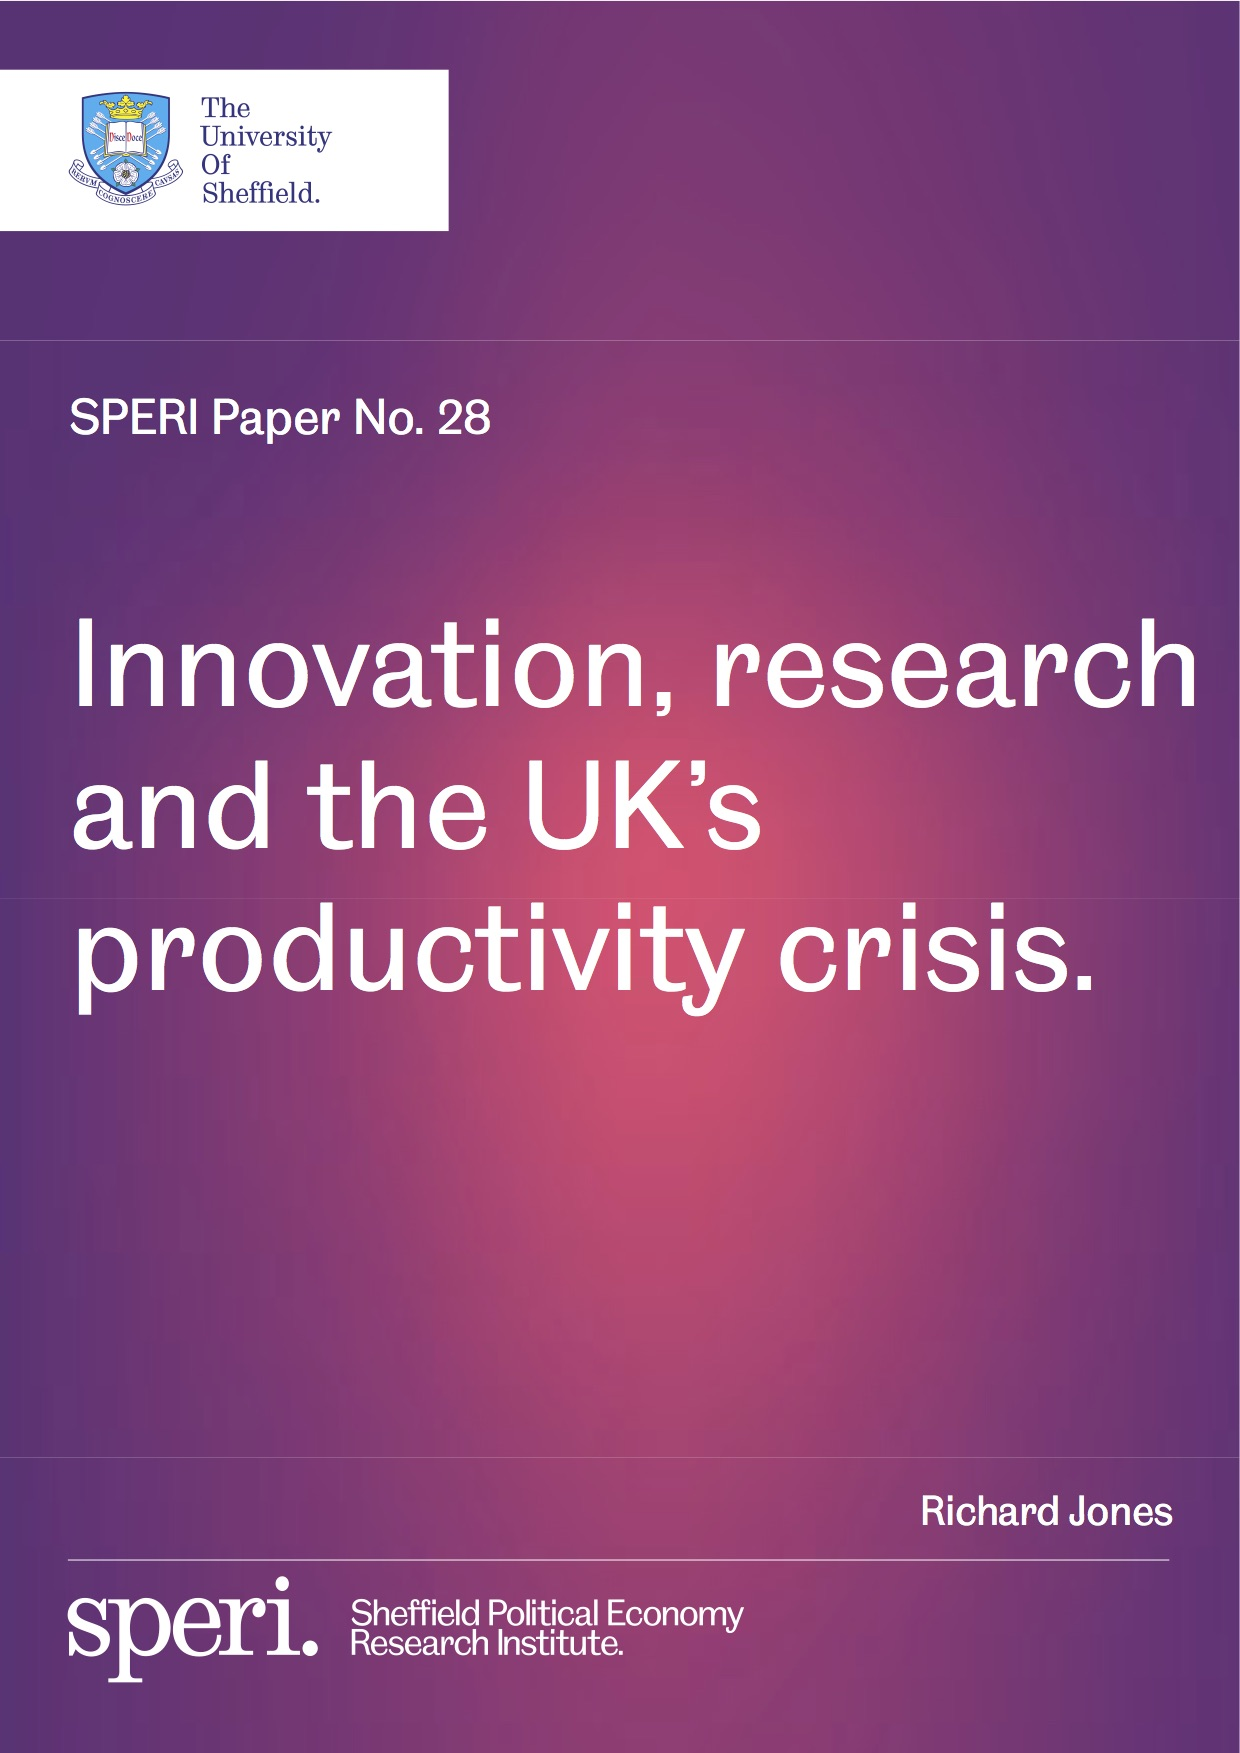 SPERI-Paper-28-Innovation-research-and-the-UK-productivity-crisis cover